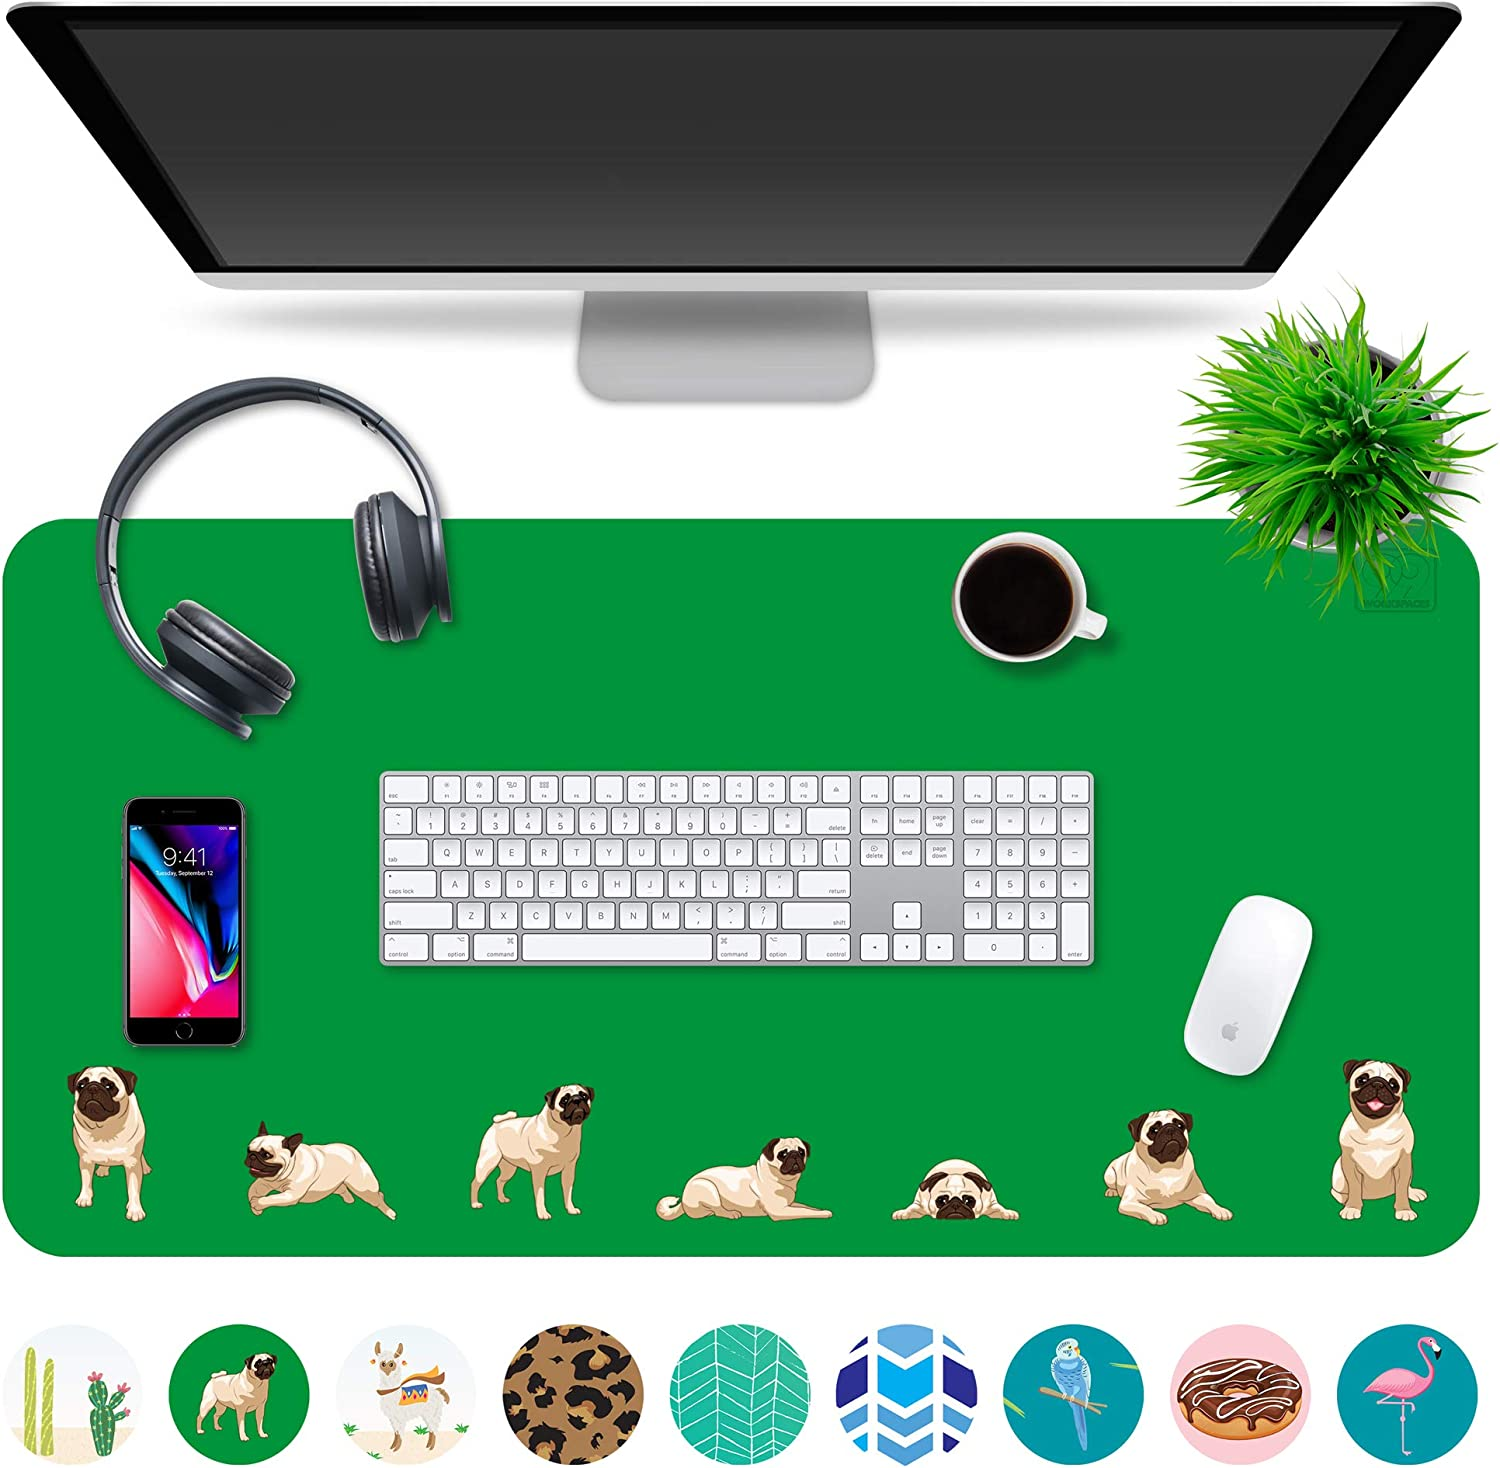 "Multipurpose Office Desk Pad and Computer Desk Mat - Waterproof Office Desk Mat and Desk Blotter Pad - Home Office Accessories (Large (35.5"" x 17.5""), Pugs)"